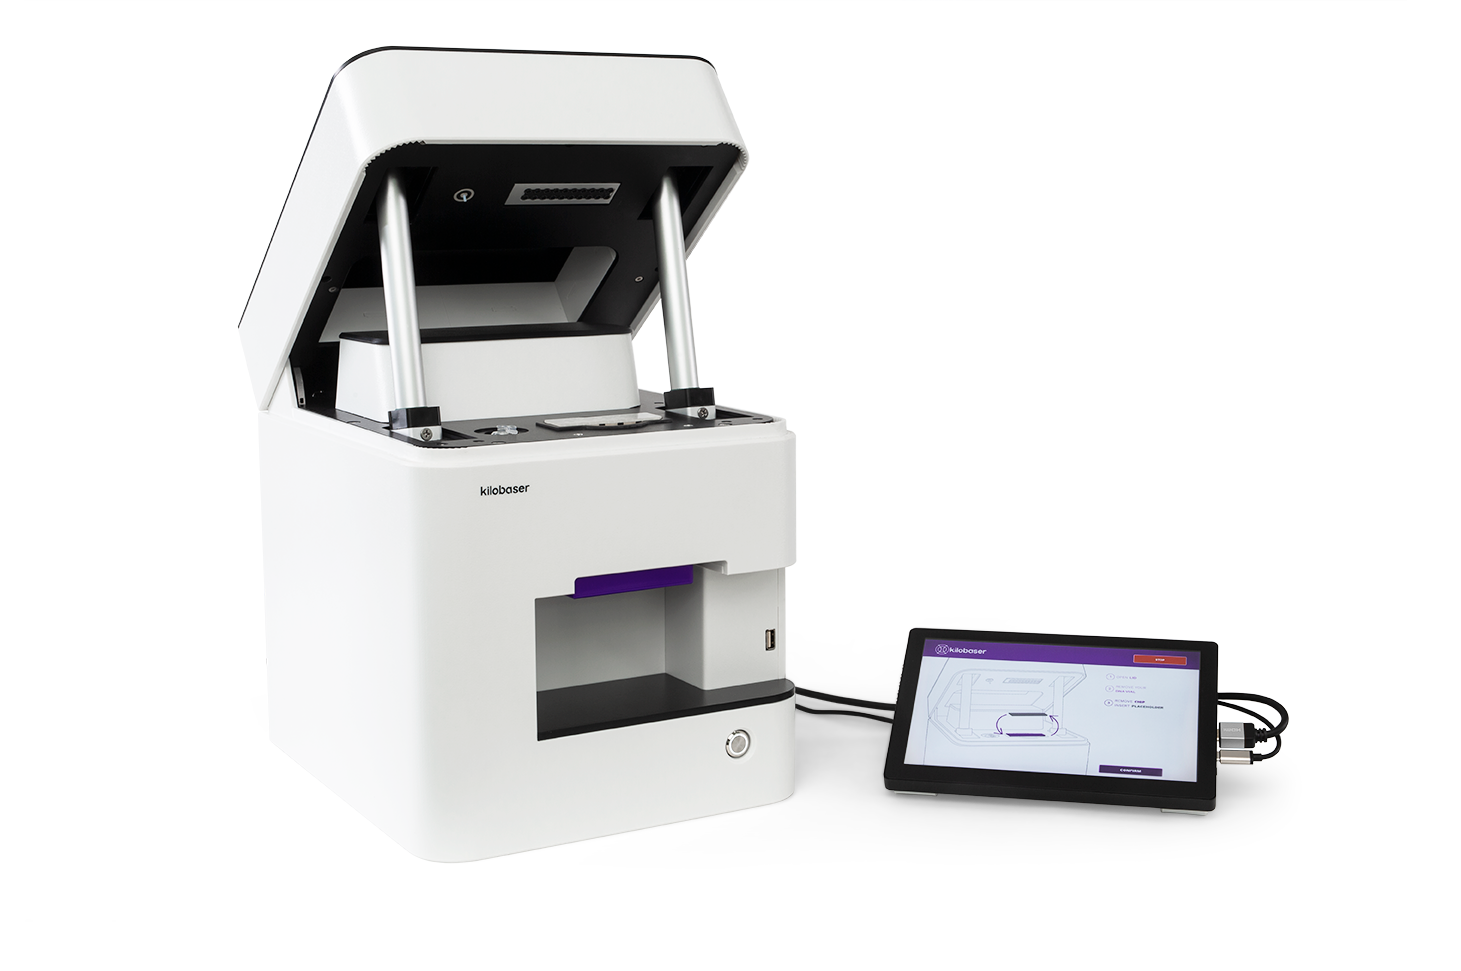 Kilobaser DNA Synthesizer machine for in-house DNA Synthesis. Synthesize DNA oligos, DNA primer, DNA probes in less than 2h.